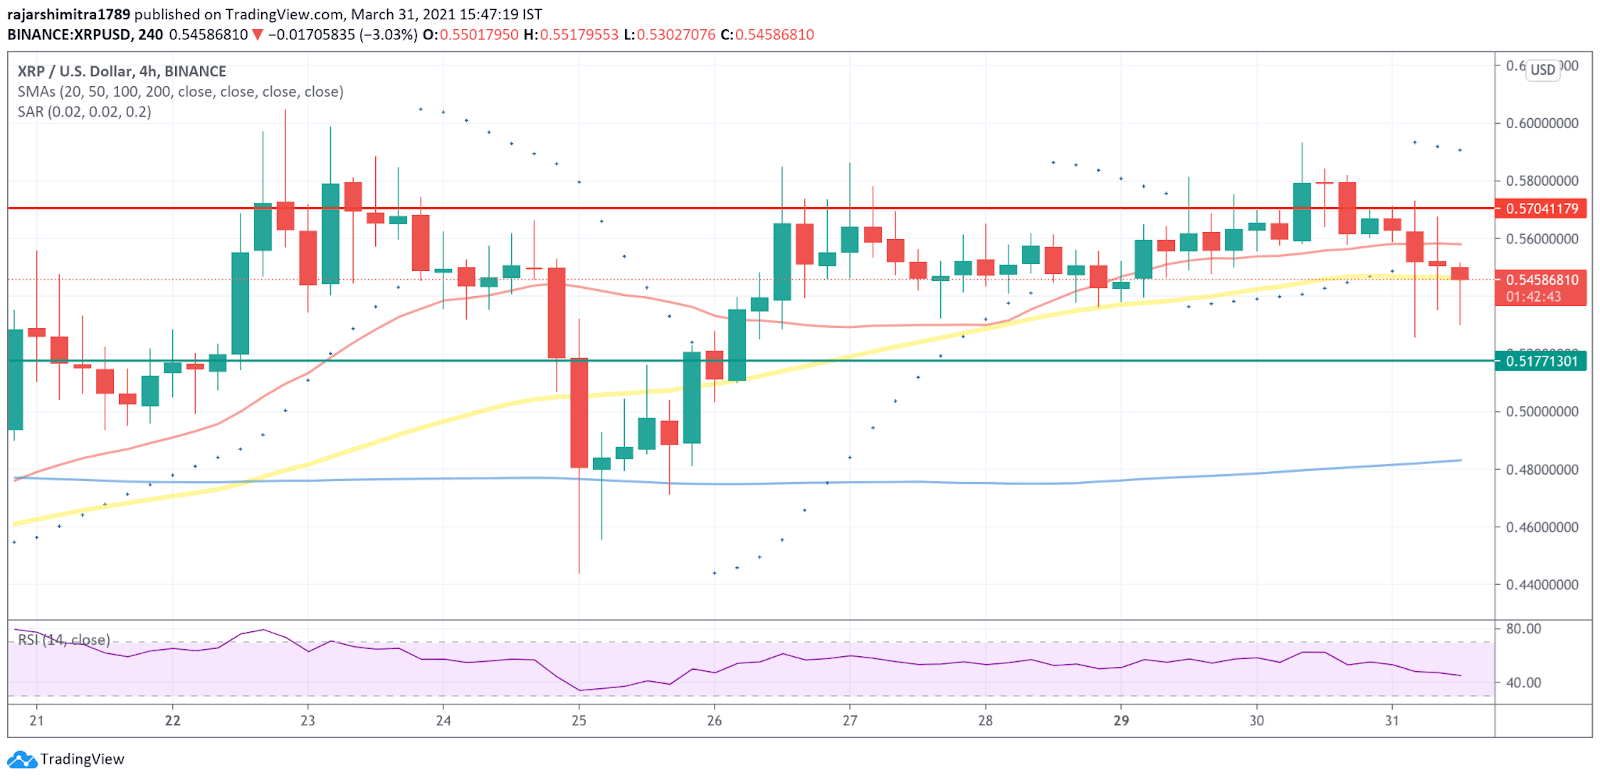 xrp/usd 4-hour chart 040121